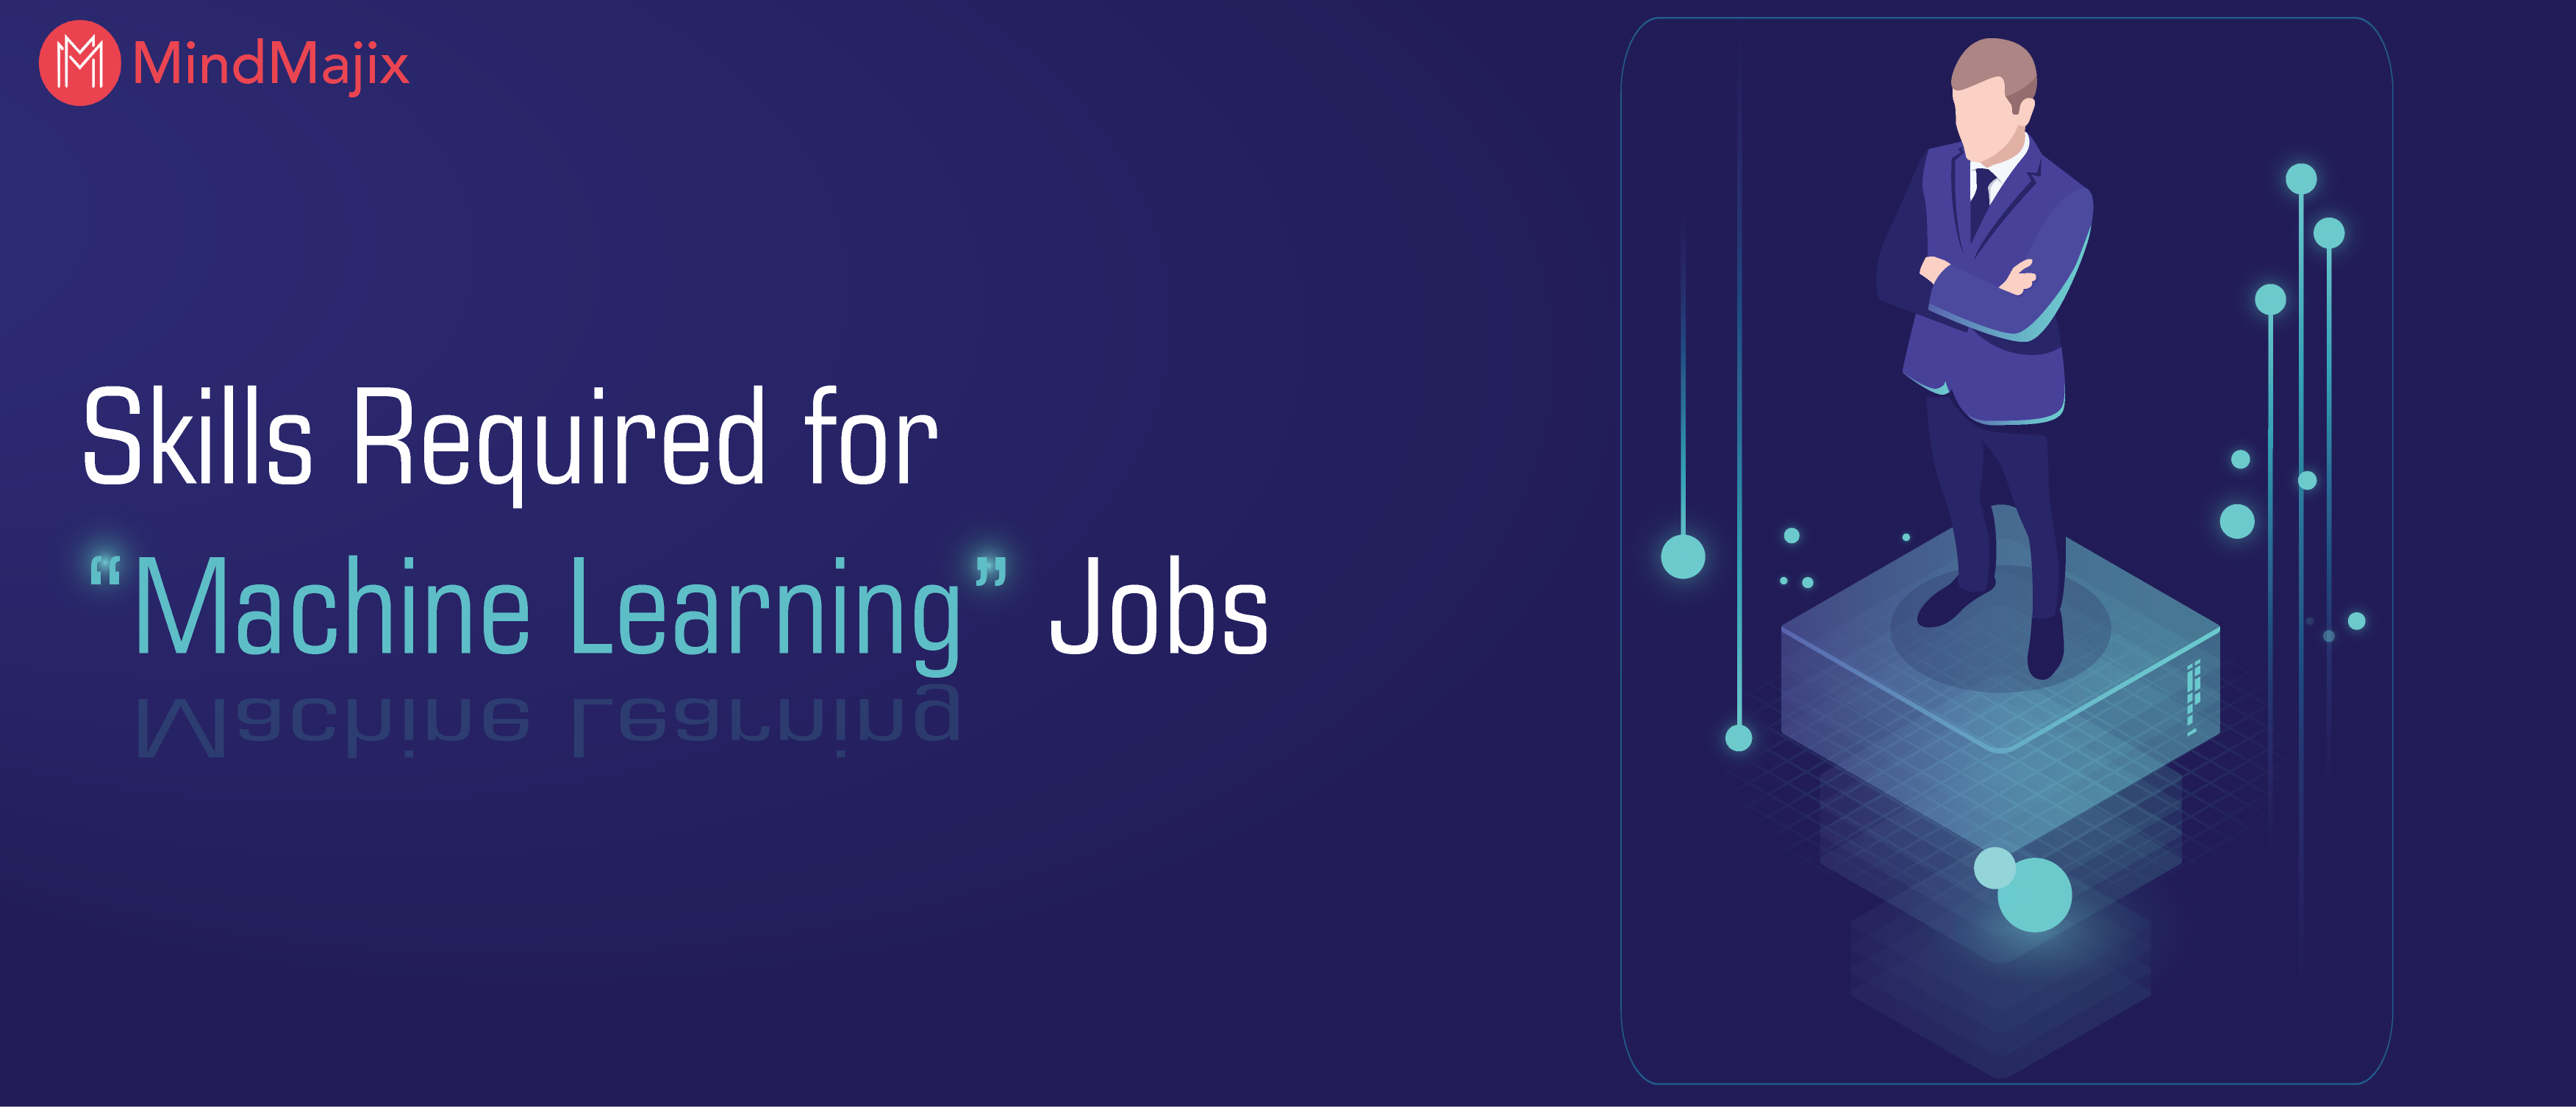 Skills Required for Machine Learning Jobs